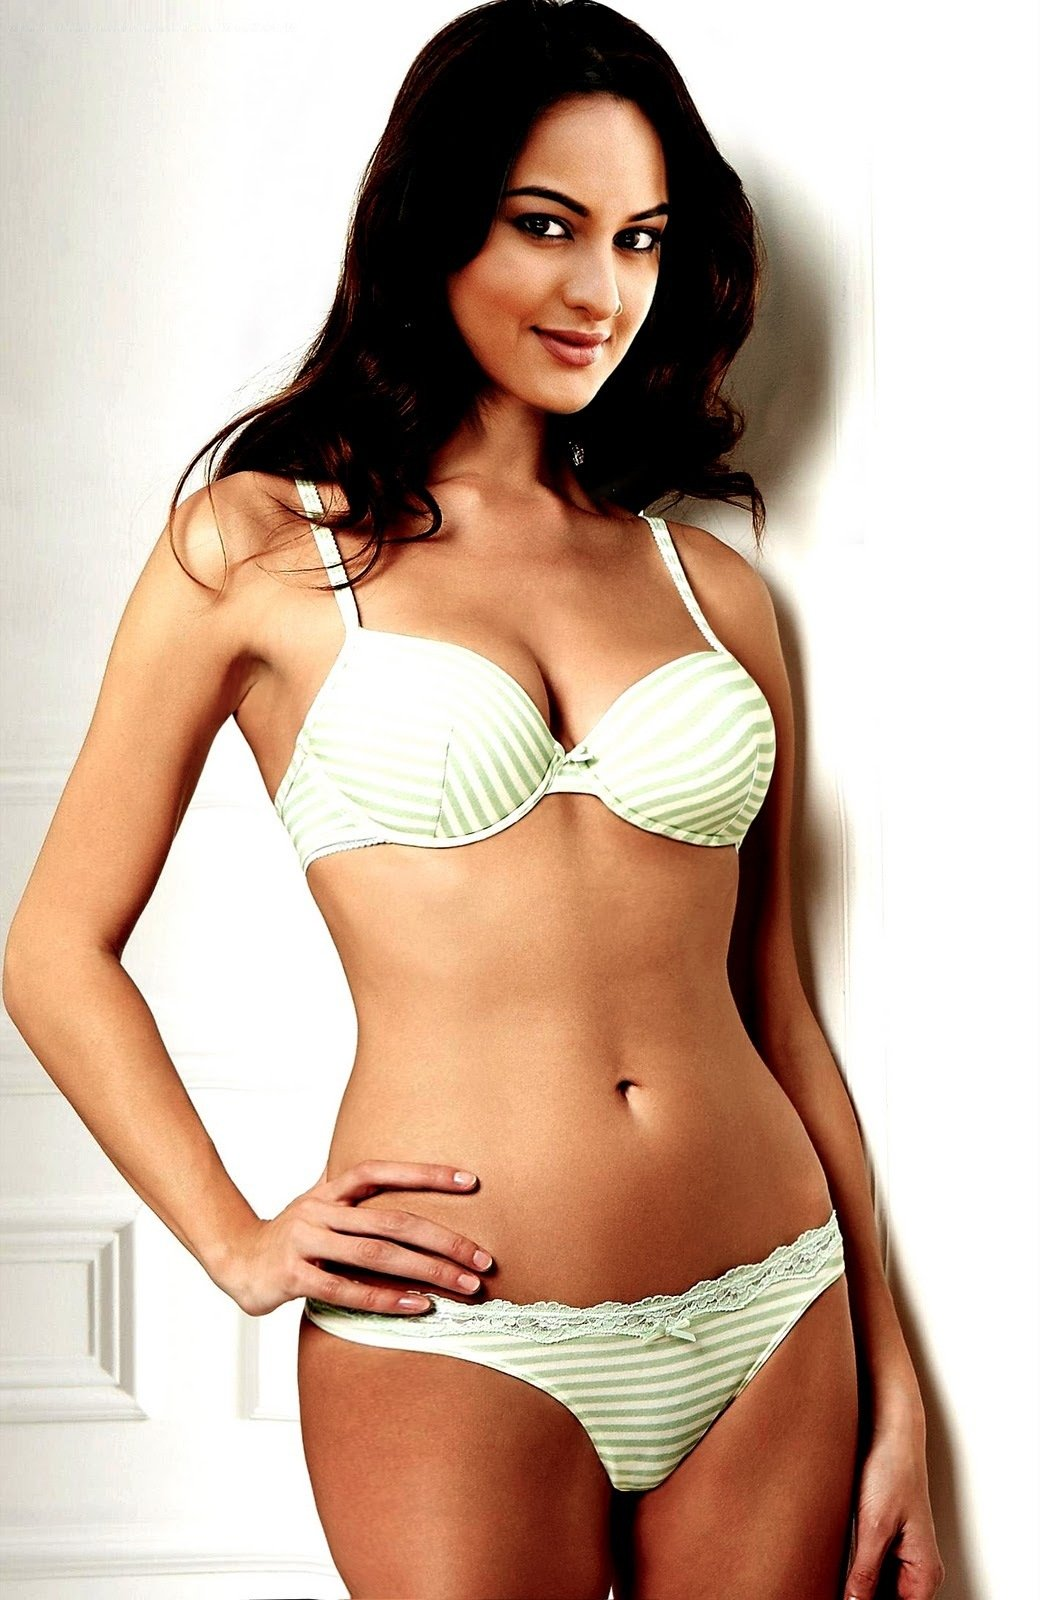 Sonakshi Sinha Is An Indian Bollywood Actress And Model  She Marked